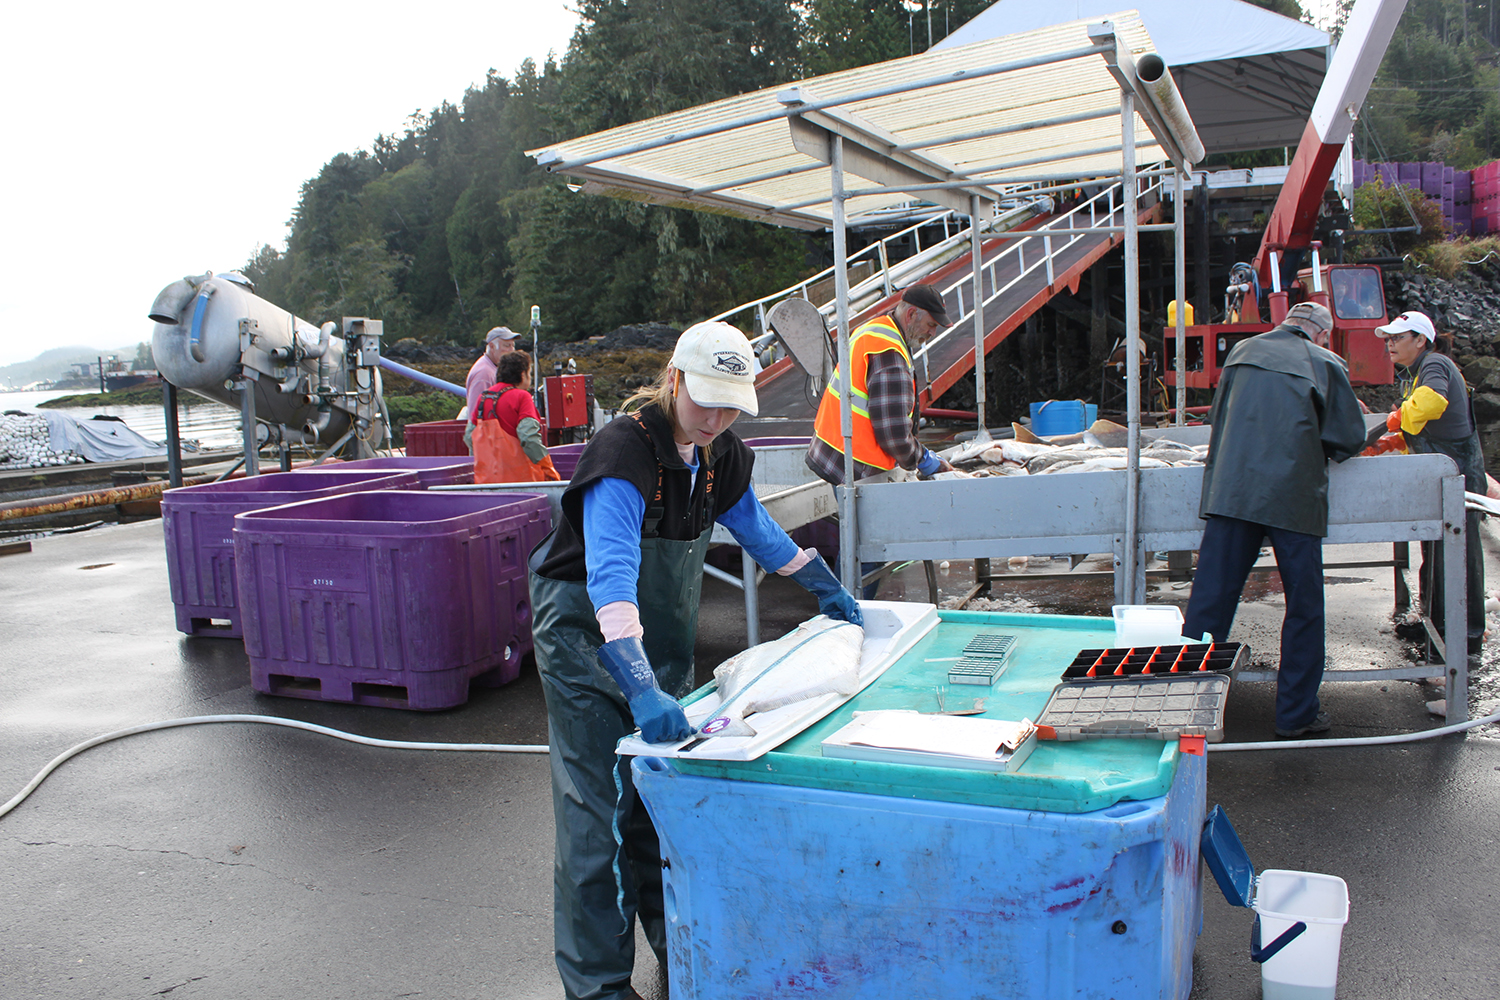 An IPHC port sampler measures a wild Pacific halibut to record length and weight, and then remove an otolith - a hard, calcium carbonate structure located directly behind the brain of the fish -so scientists can determine age and derive age-related information as well as growth rates of the wild Pacific halibut.